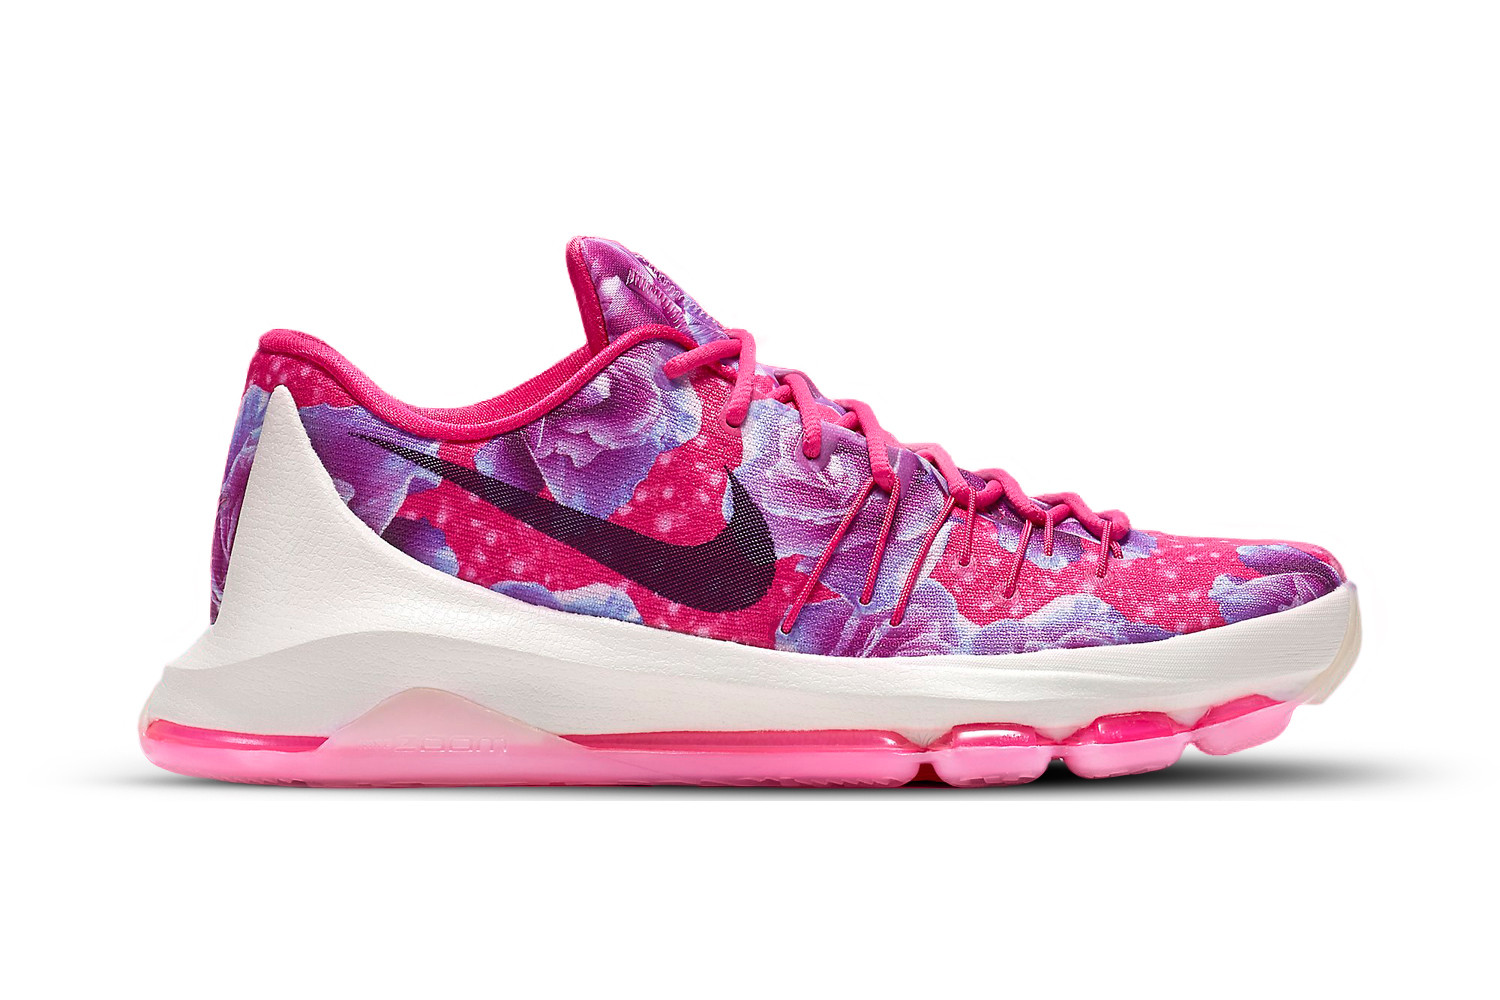 Kevin Durant Aunt Pearl Release Date